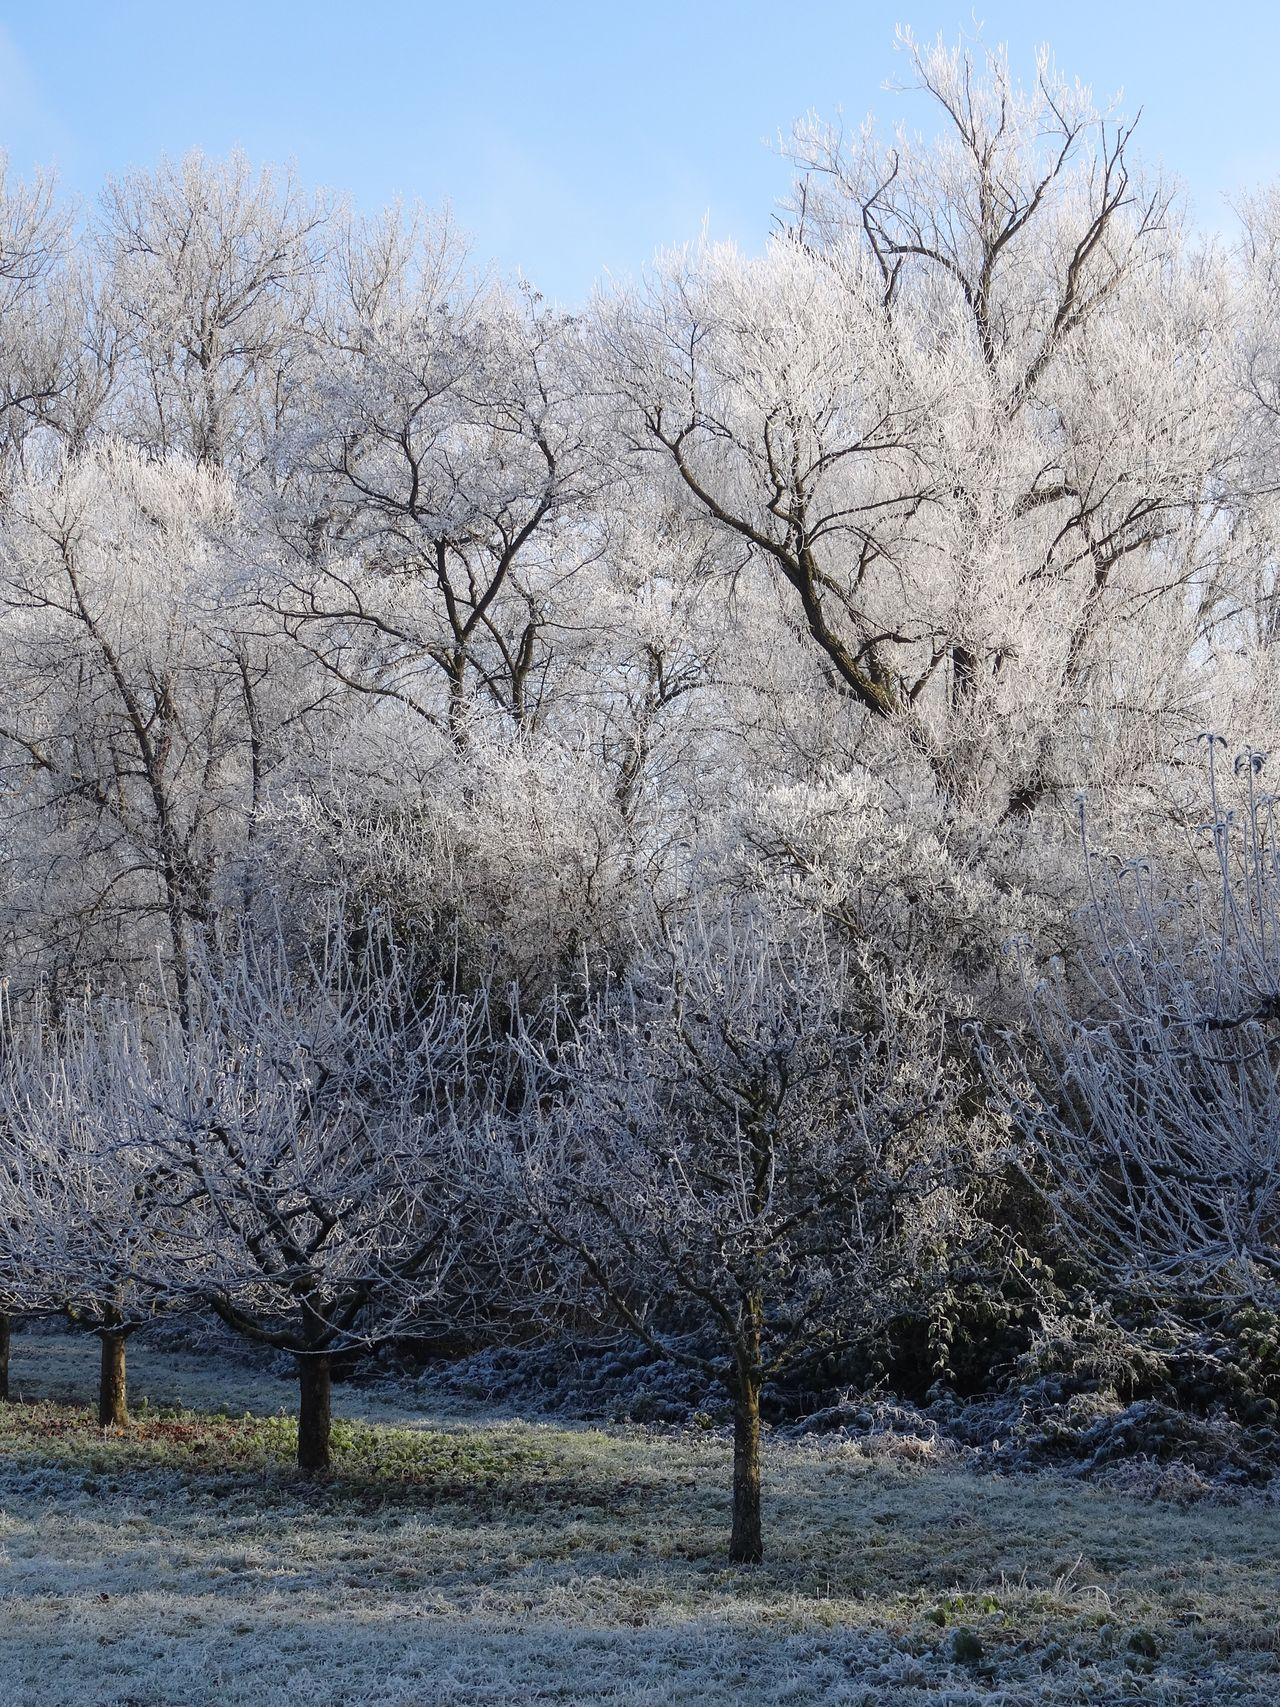 Tree Bare Tree Branch Nature Outdoors No People Tranquil Scene Tranquility Field Clear Sky Growth Beauty In Nature Day Sky Scenics Dried Plant Winter Wonderland White Frost Cold Temperature Snow Clear Sky Germany